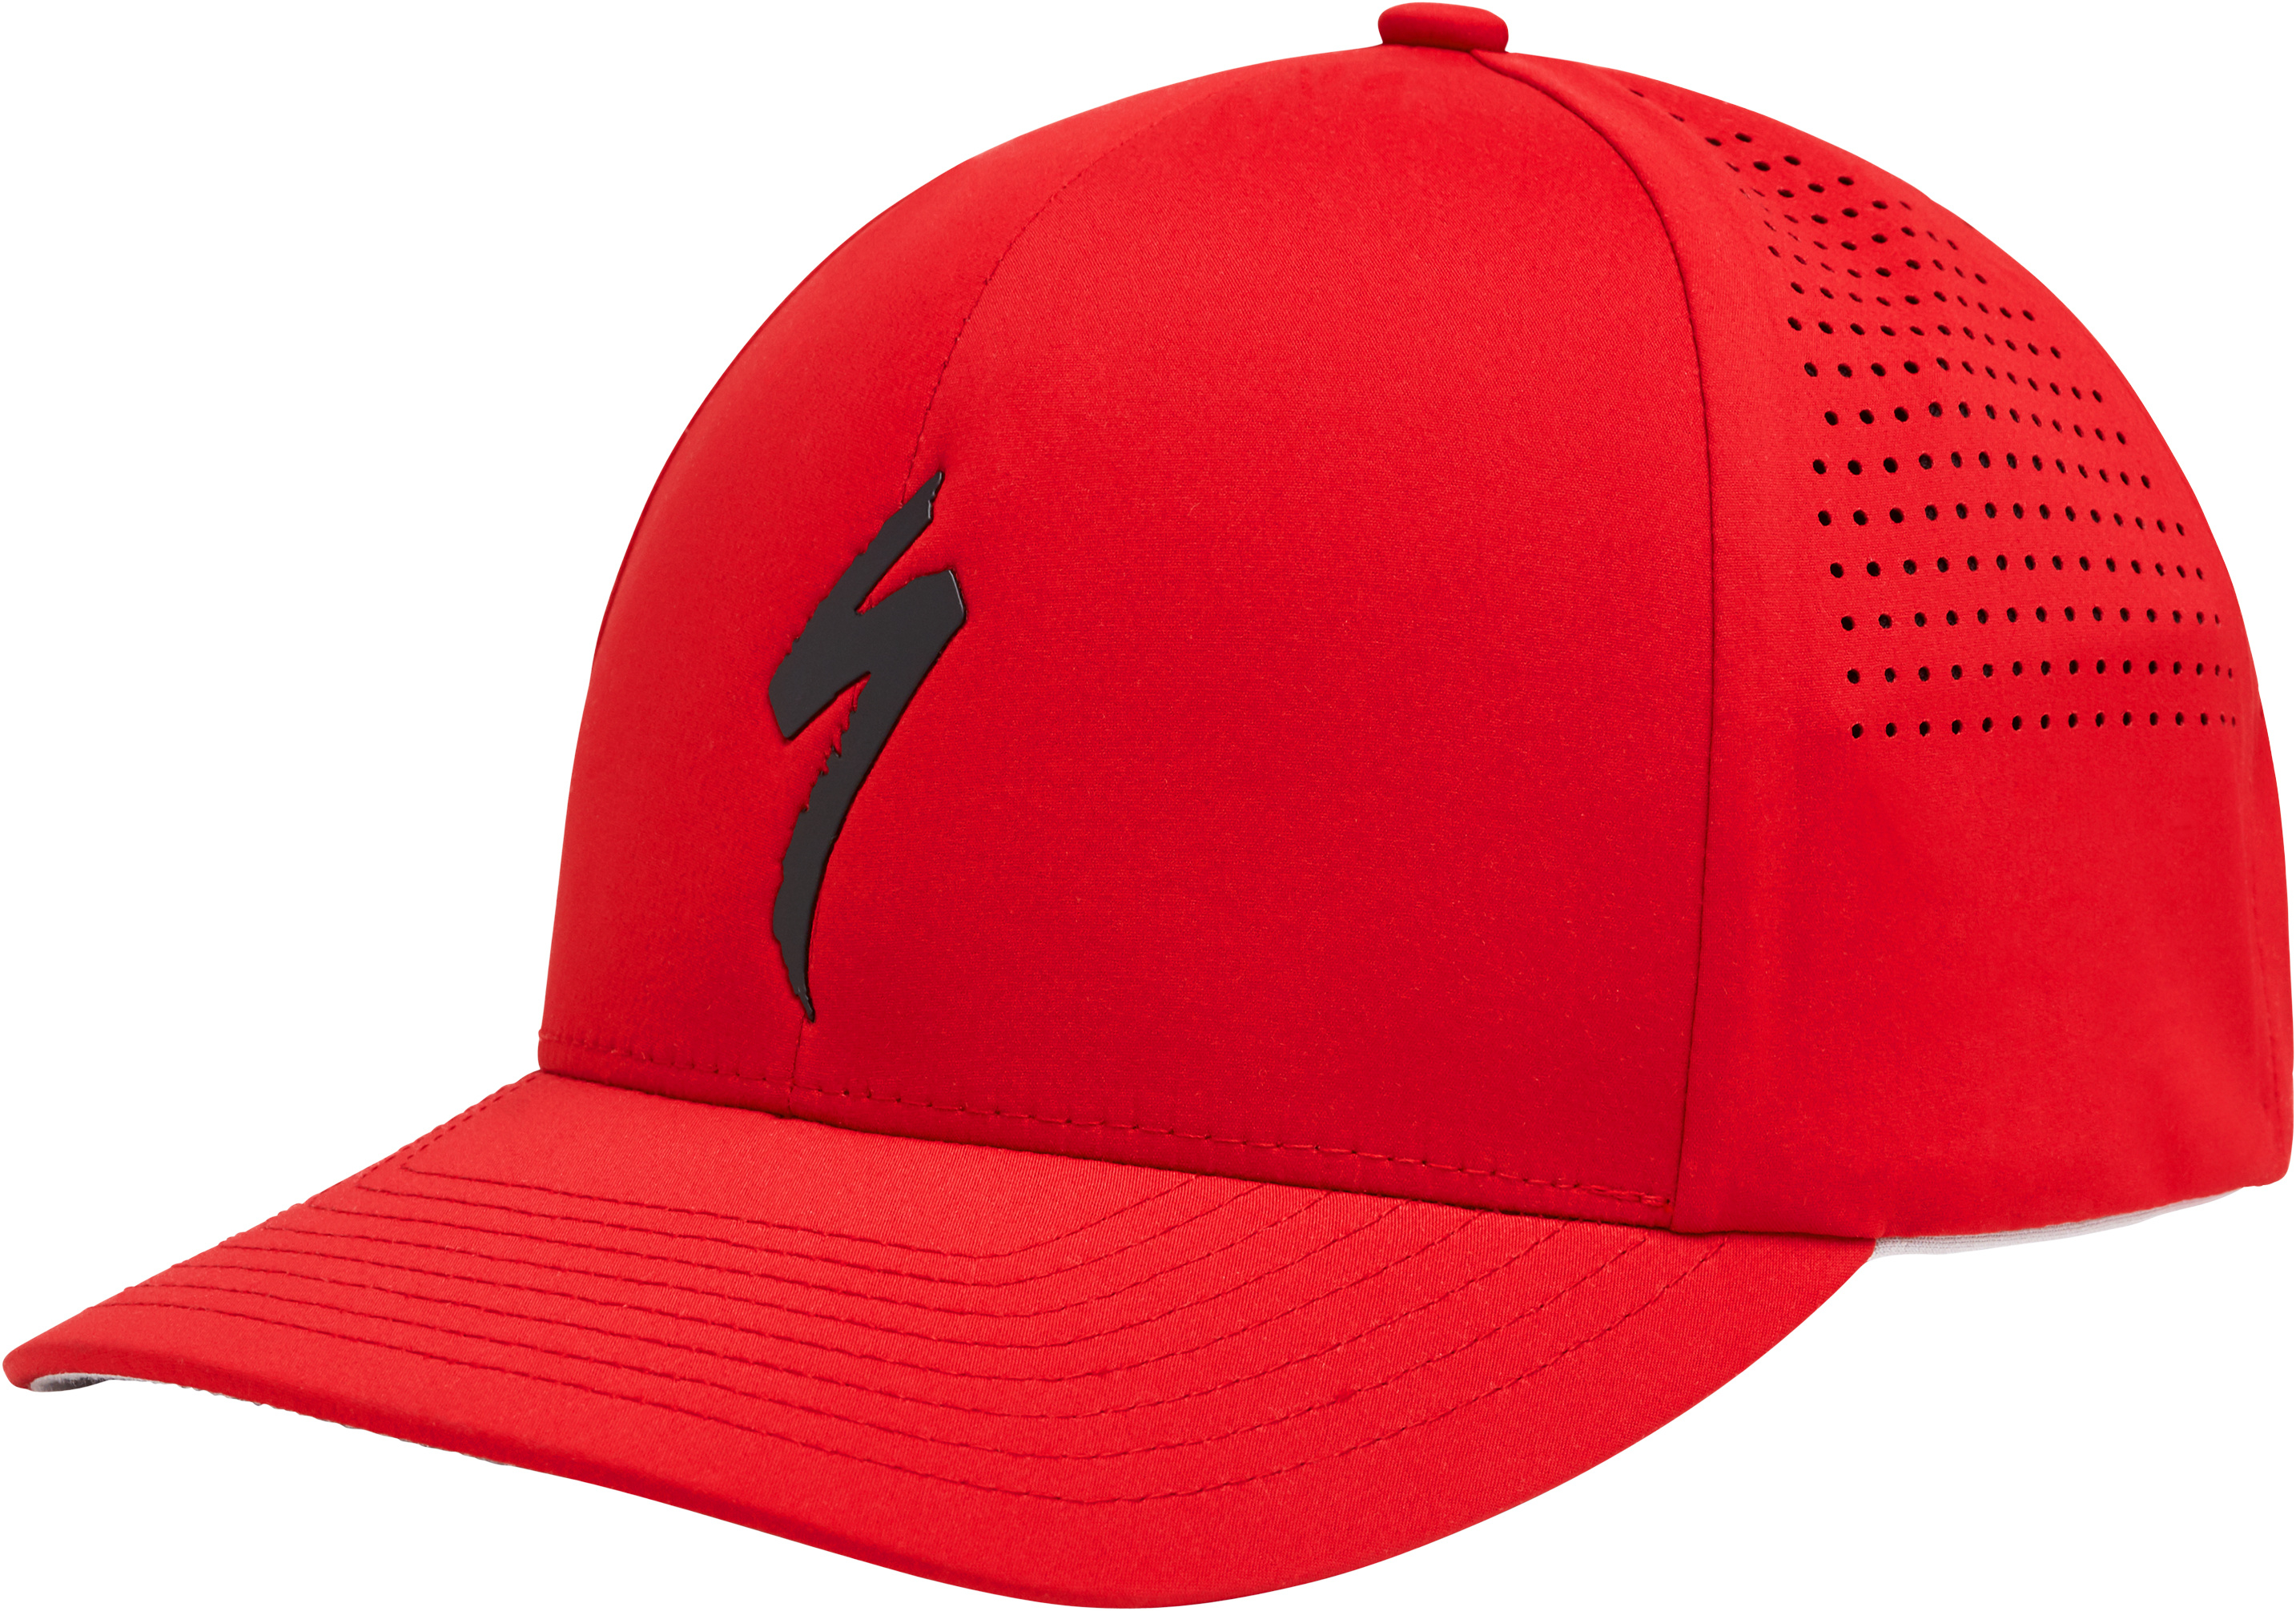 5d88944148ed9 2019 Specialized Delta Flexfit Cap in Red £35.00